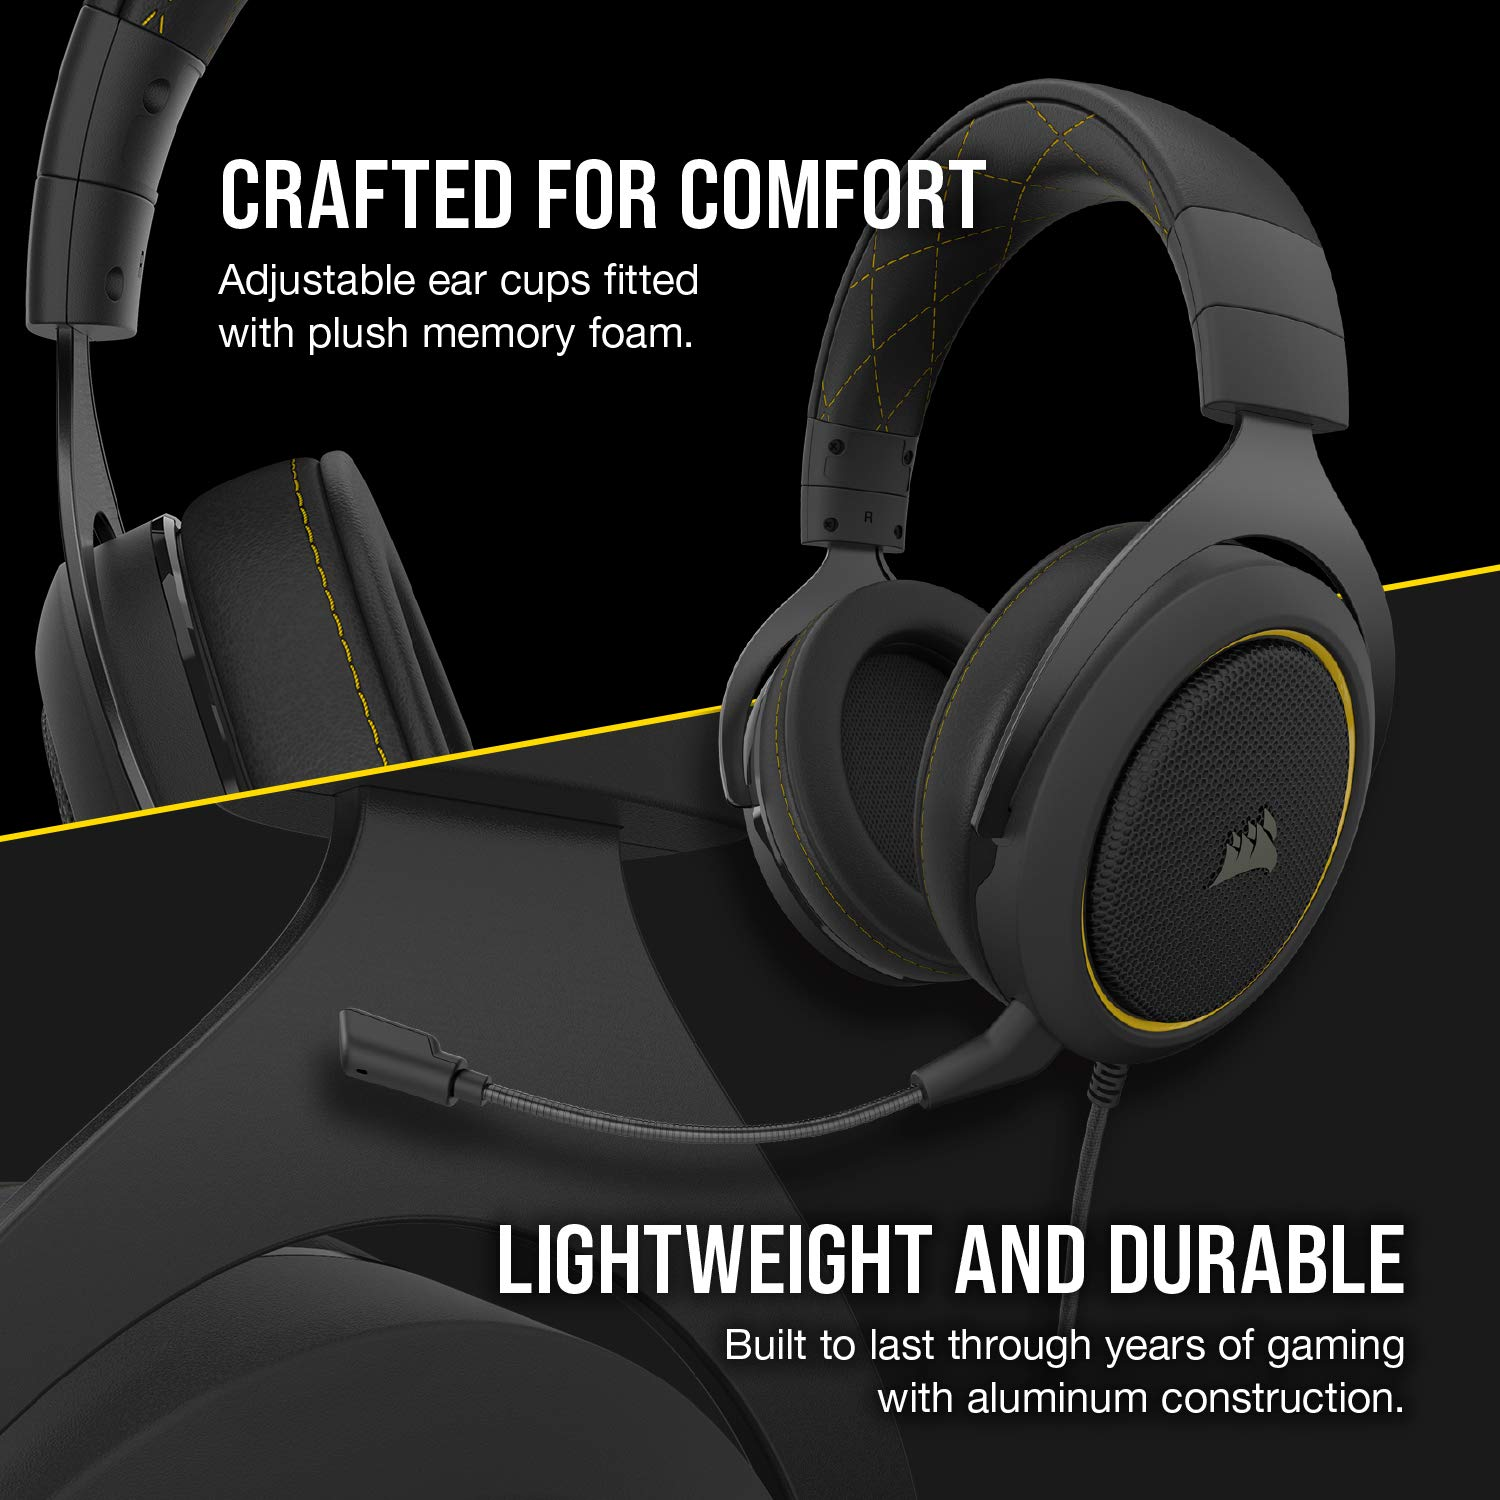 Corsair HS50 Stereo Gaming Headset (Unidirectional Noise Cancelling,  Optimised Unidirectional Microphone, On-Ear Control with PC, Xbox One, PS4,  Nintendo Switch and Mobile Compatibility) - Green- Buy Online in Sri Lanka  at desertcart.lk.